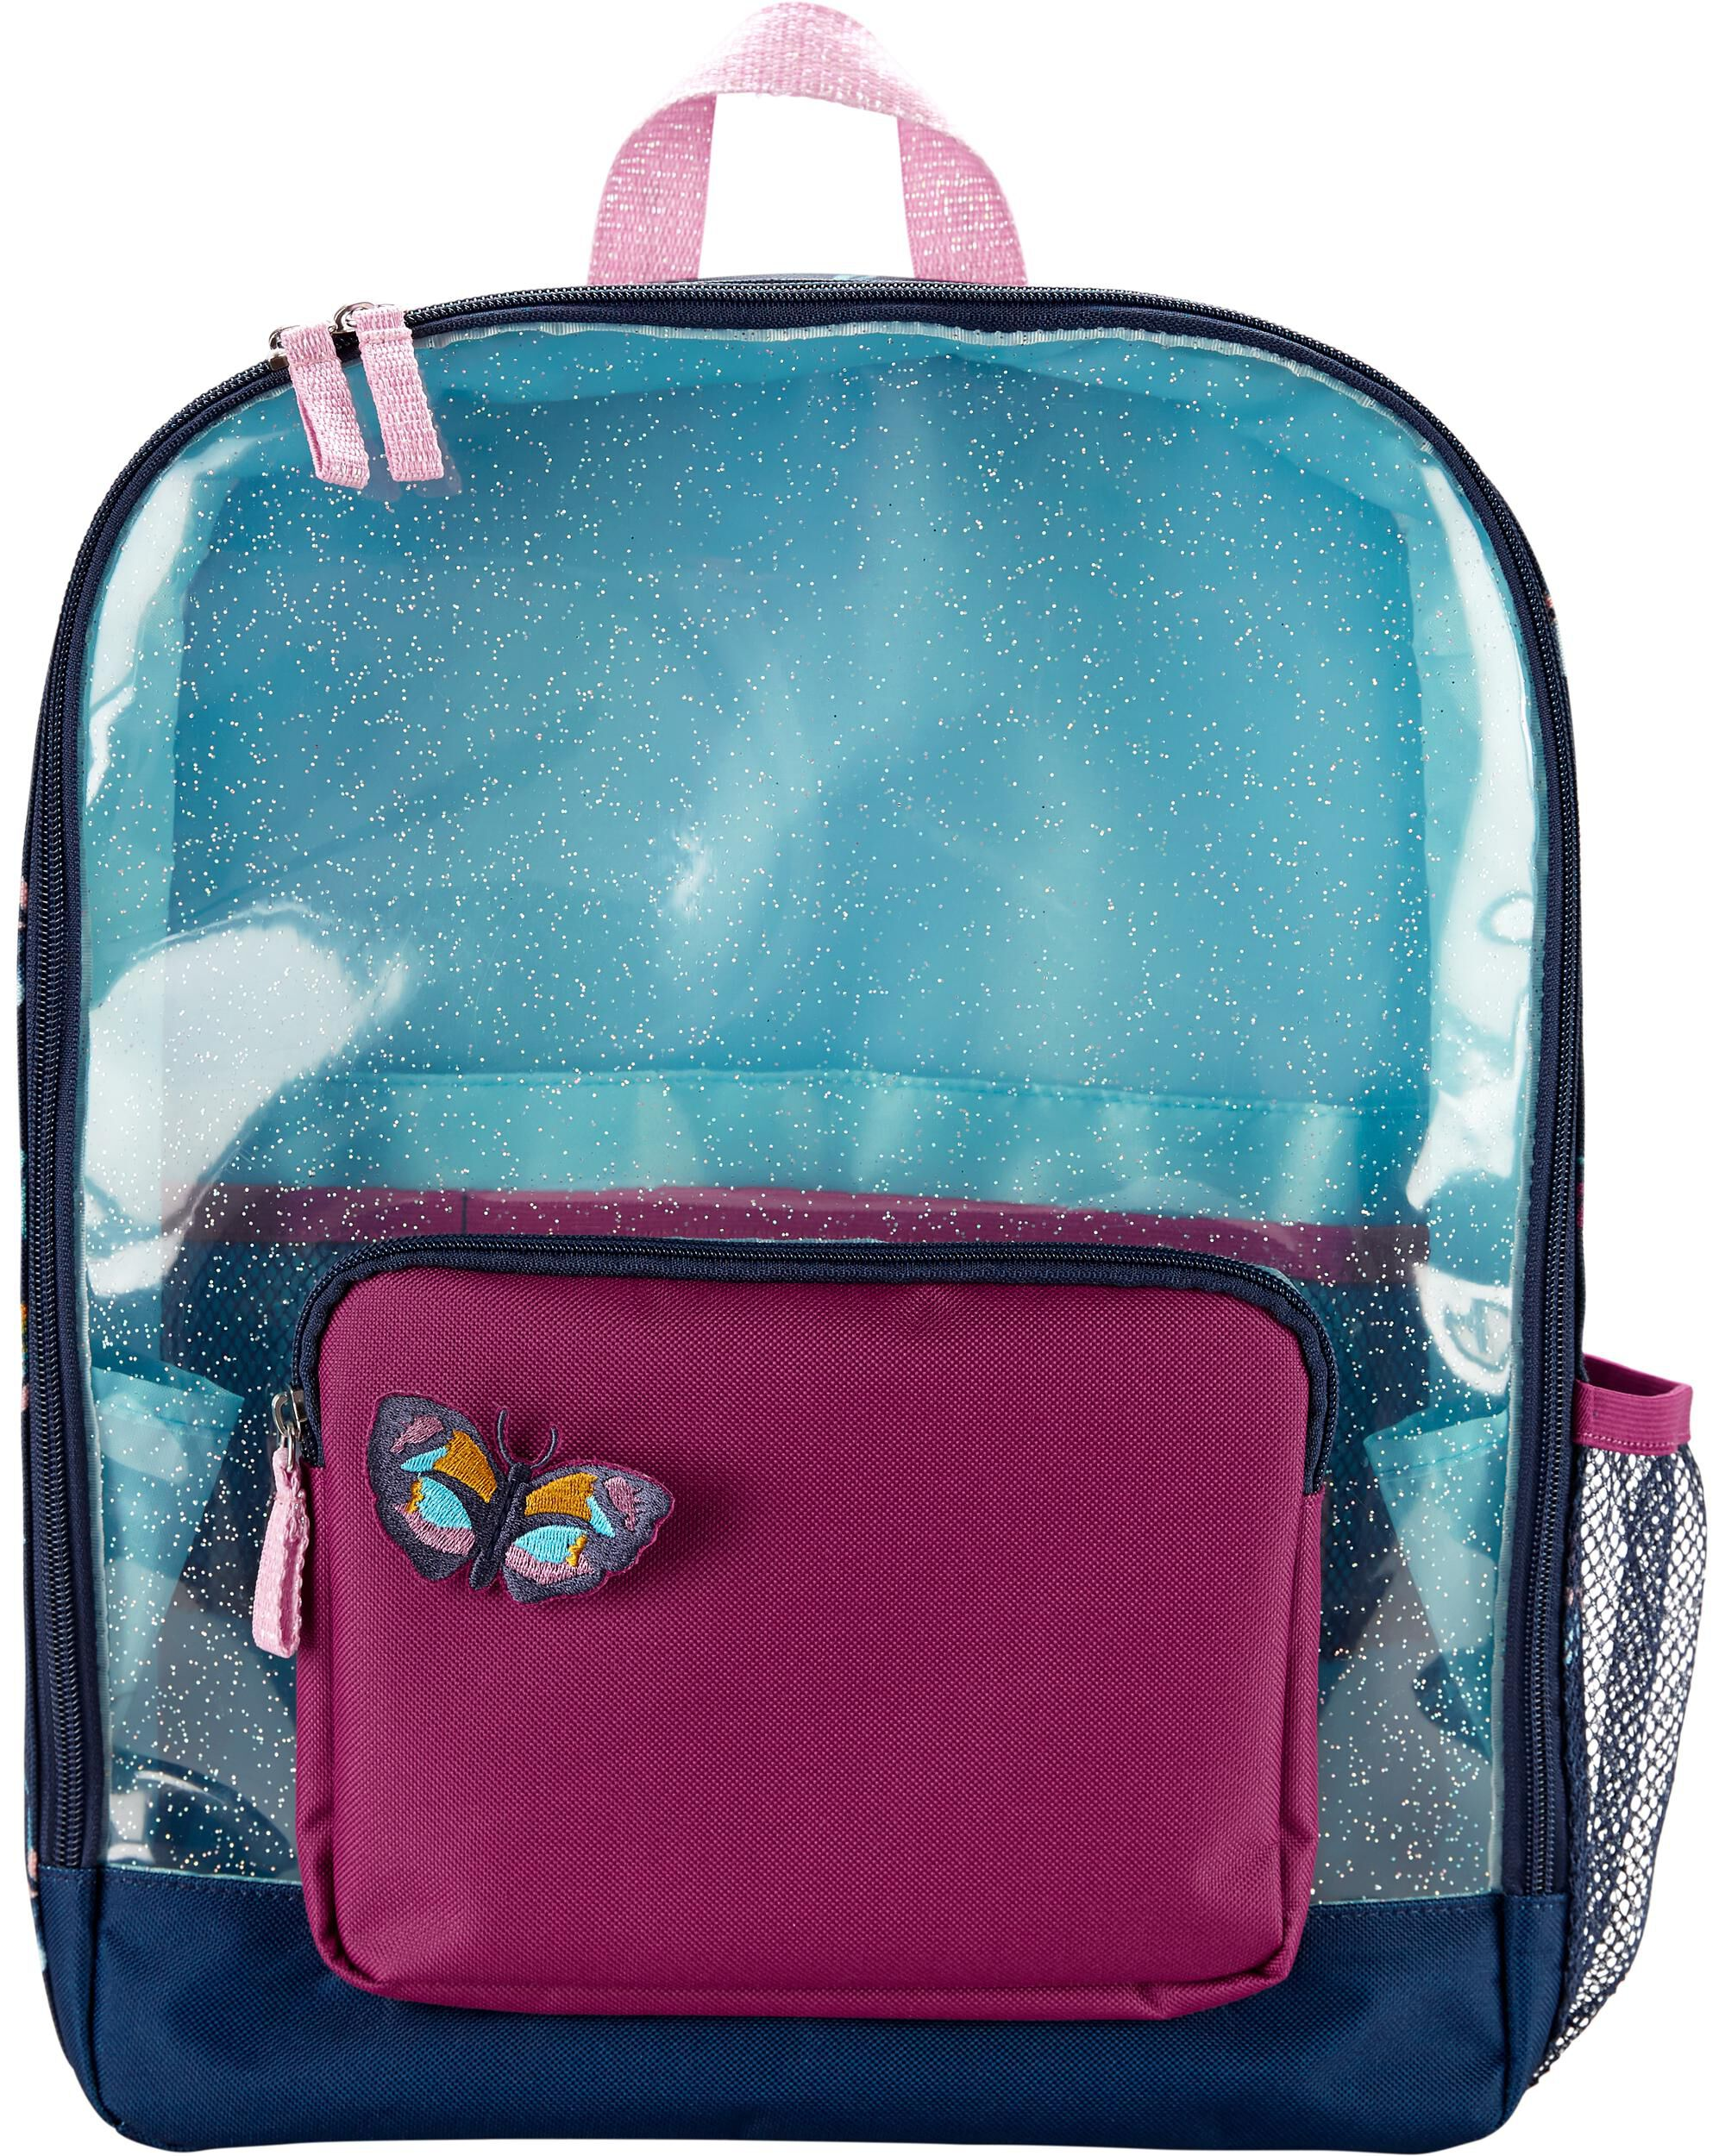 Oshkoshbgosh Floral Clear Glitter Backpack